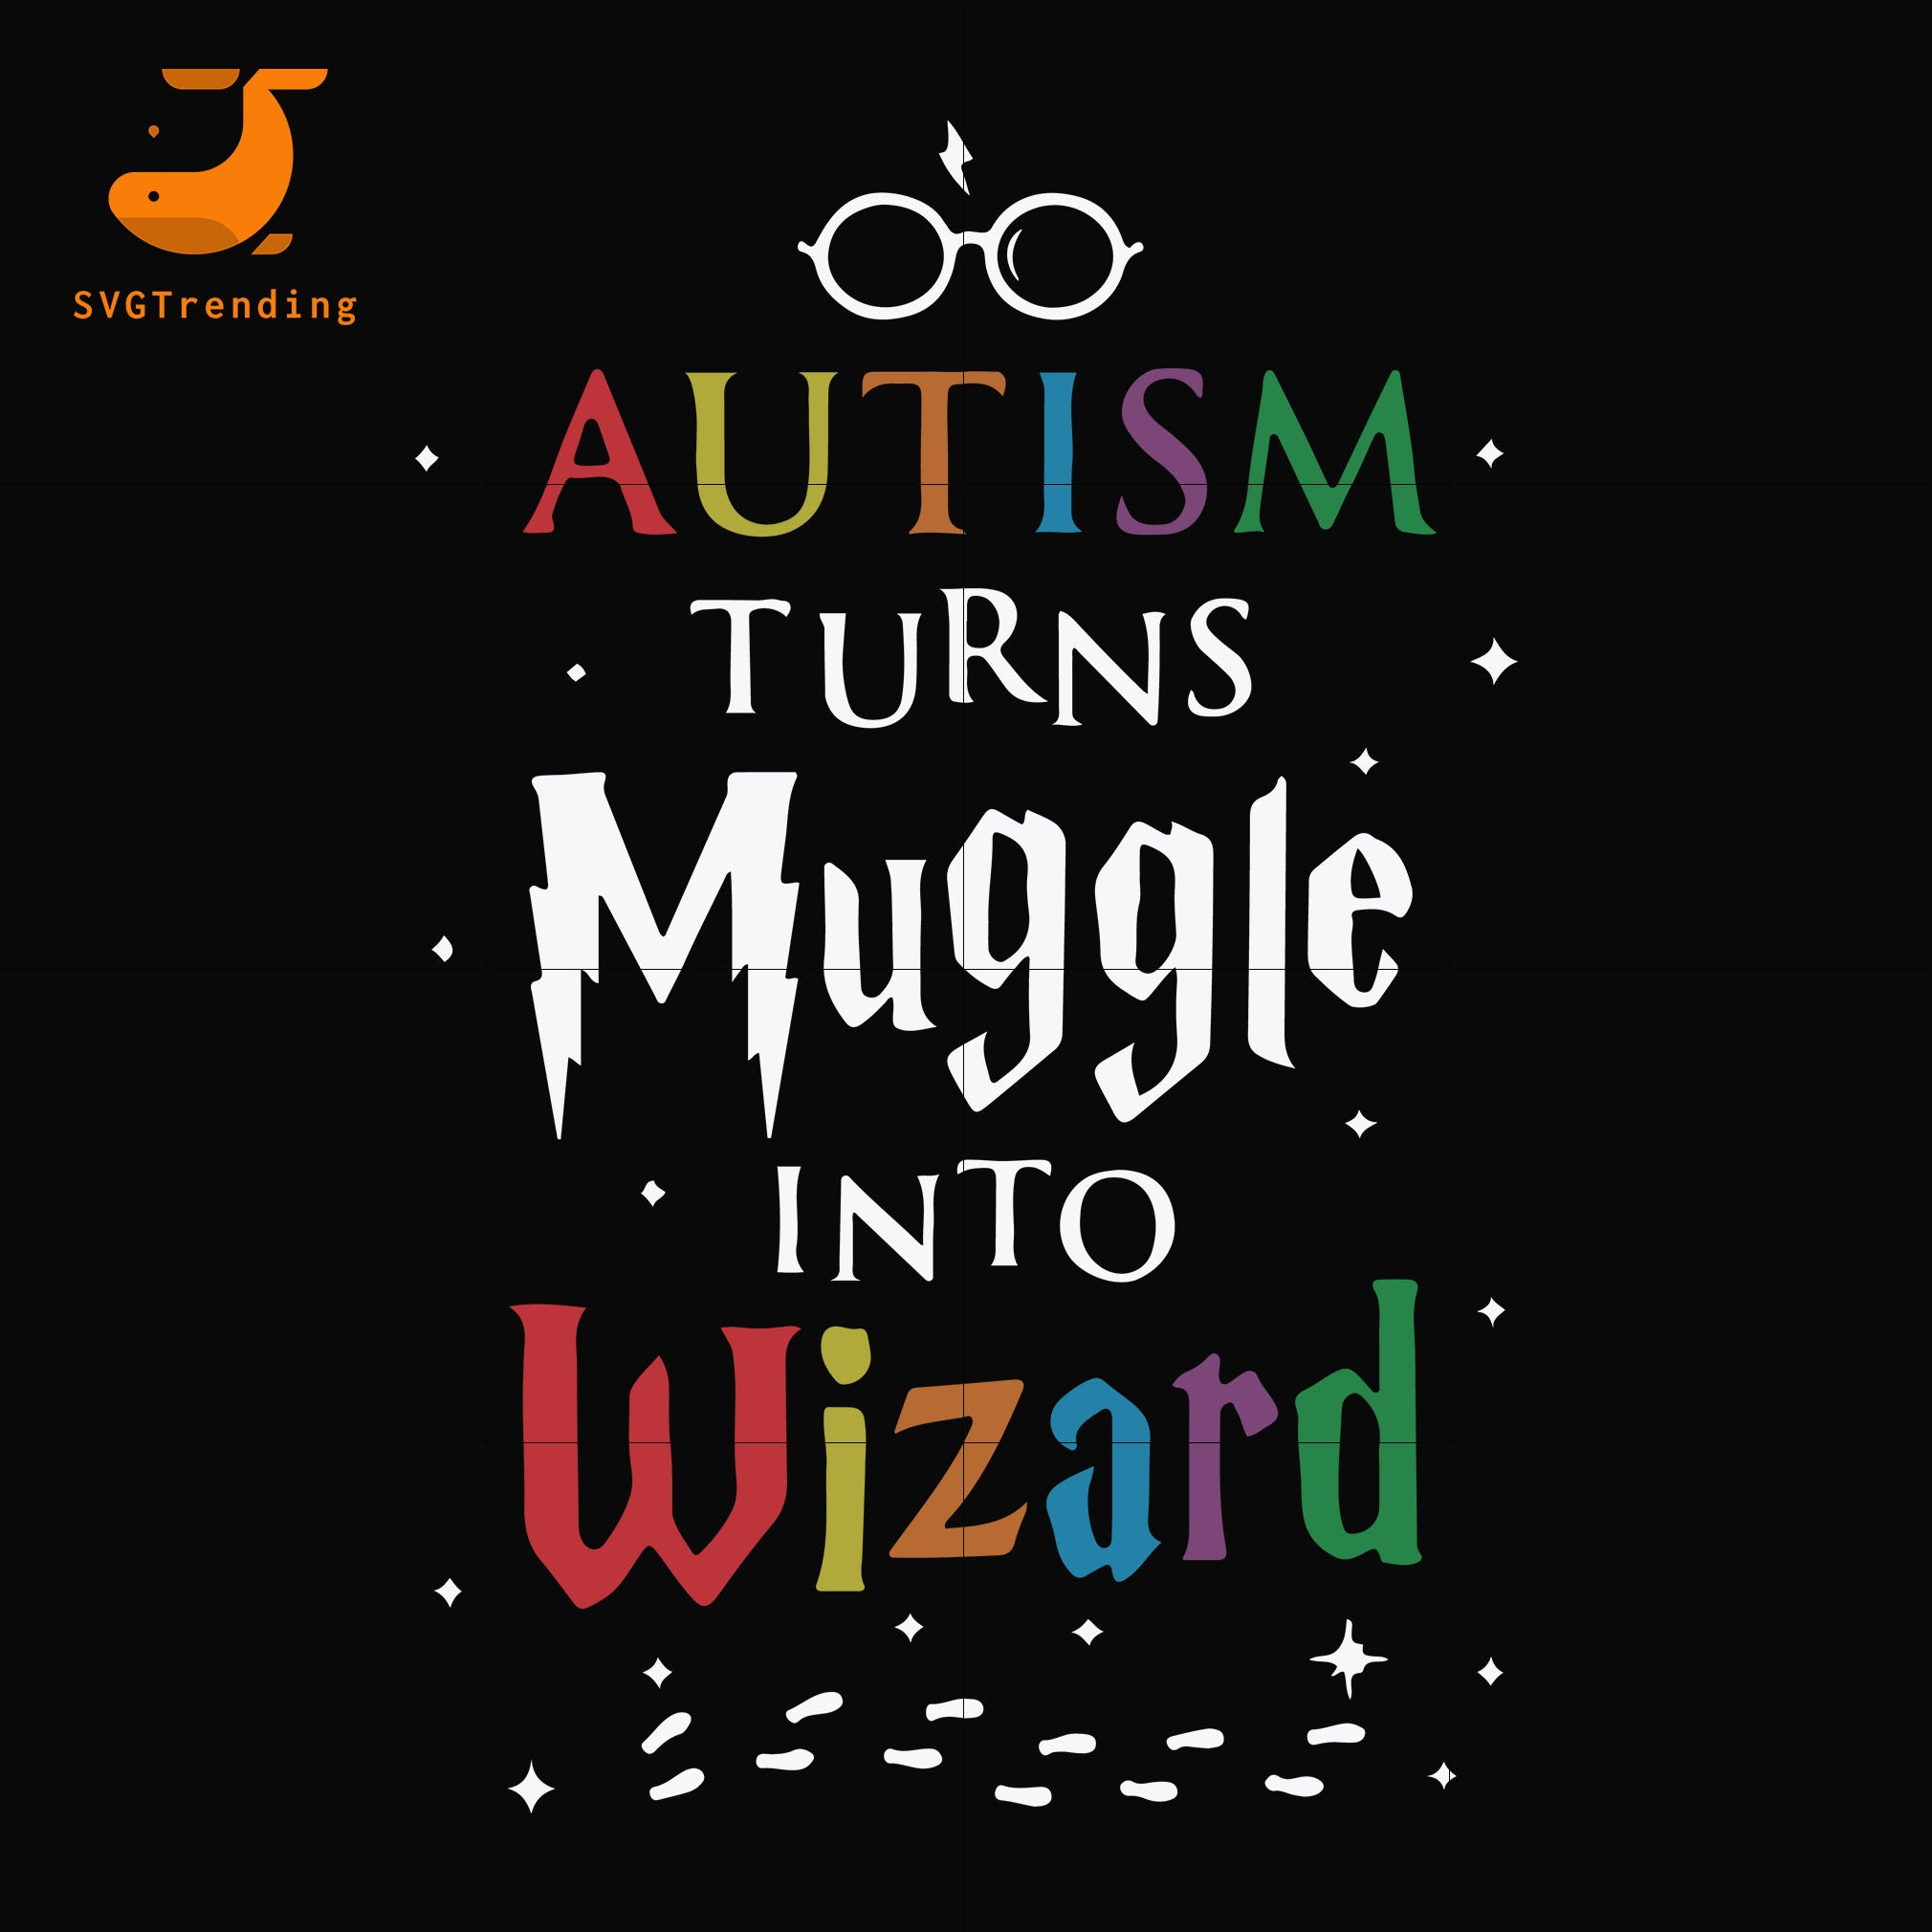 Autism turn muggle into wizard svg, autism harry potter svg, dxf, eps, png digital file